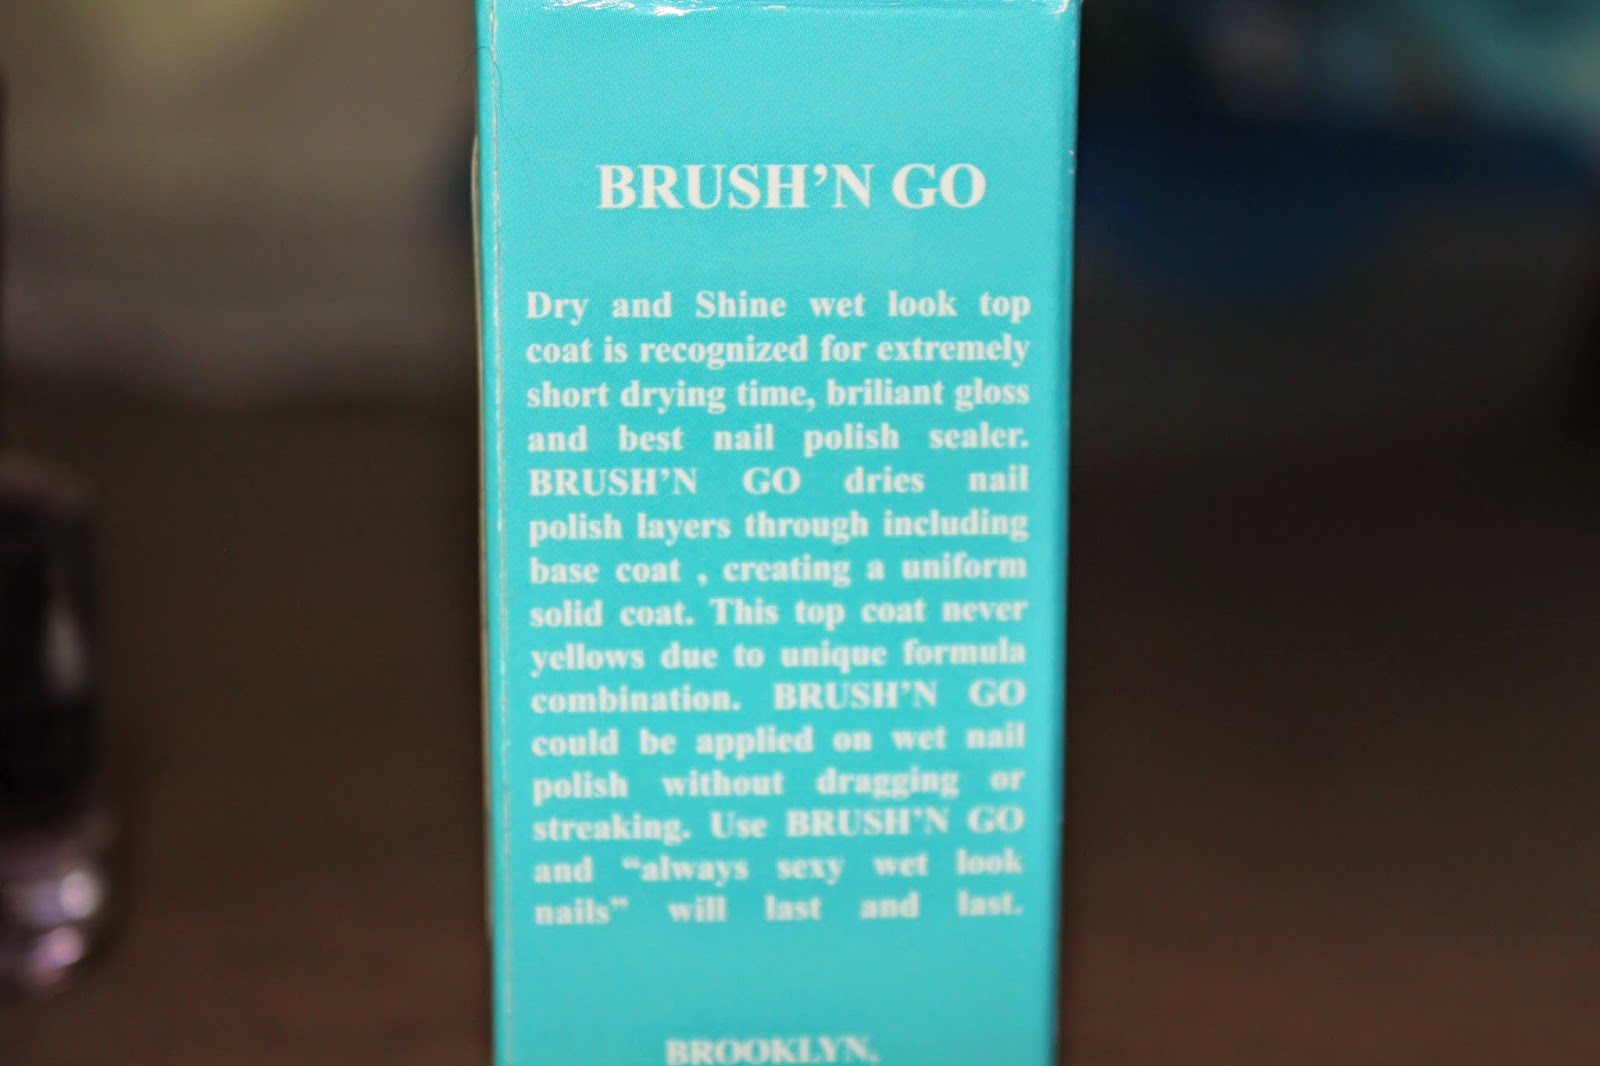 Duri Brush 'n Go Top Coat Review